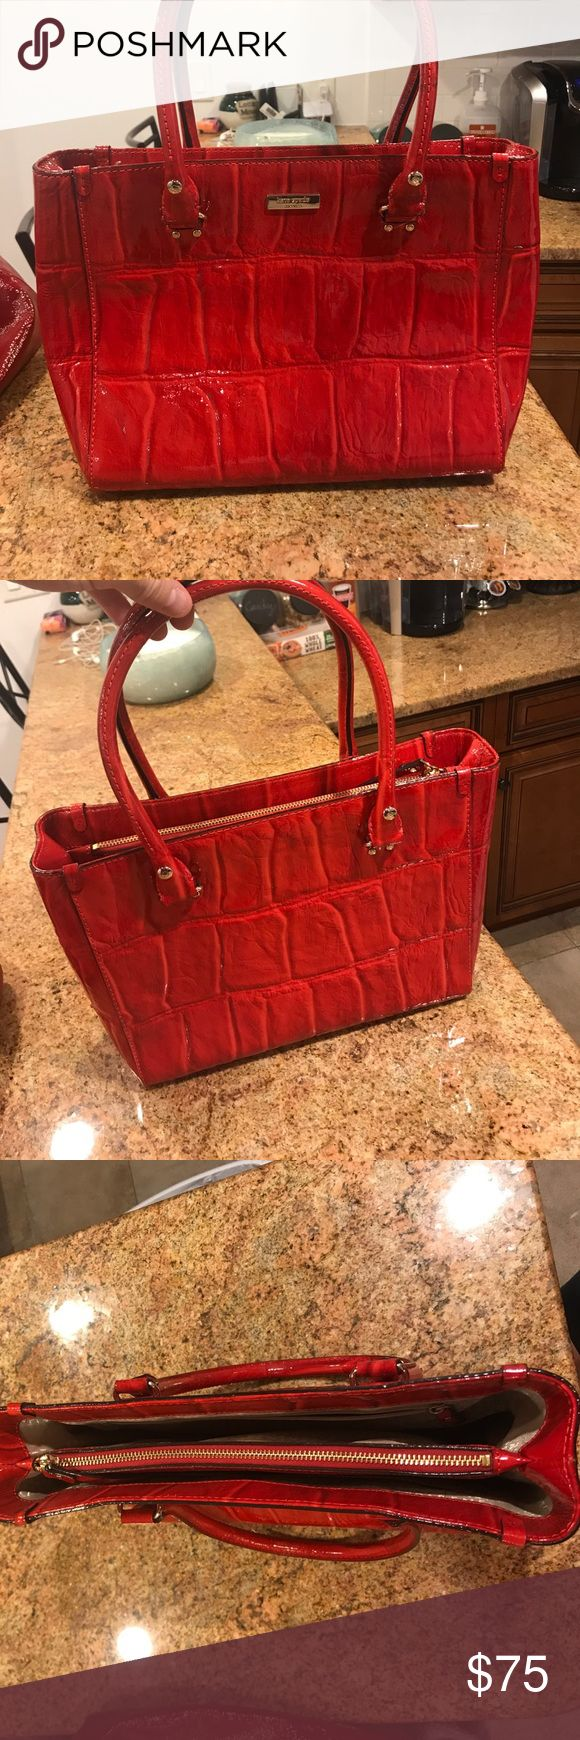 Kate Spade Bag Up for sale. 100% Authentic Kate Spade handbag. This red bag is sure to standout anywhere you go! Very lightly used and in great condition! 13 x 10 Kate Spade Bags